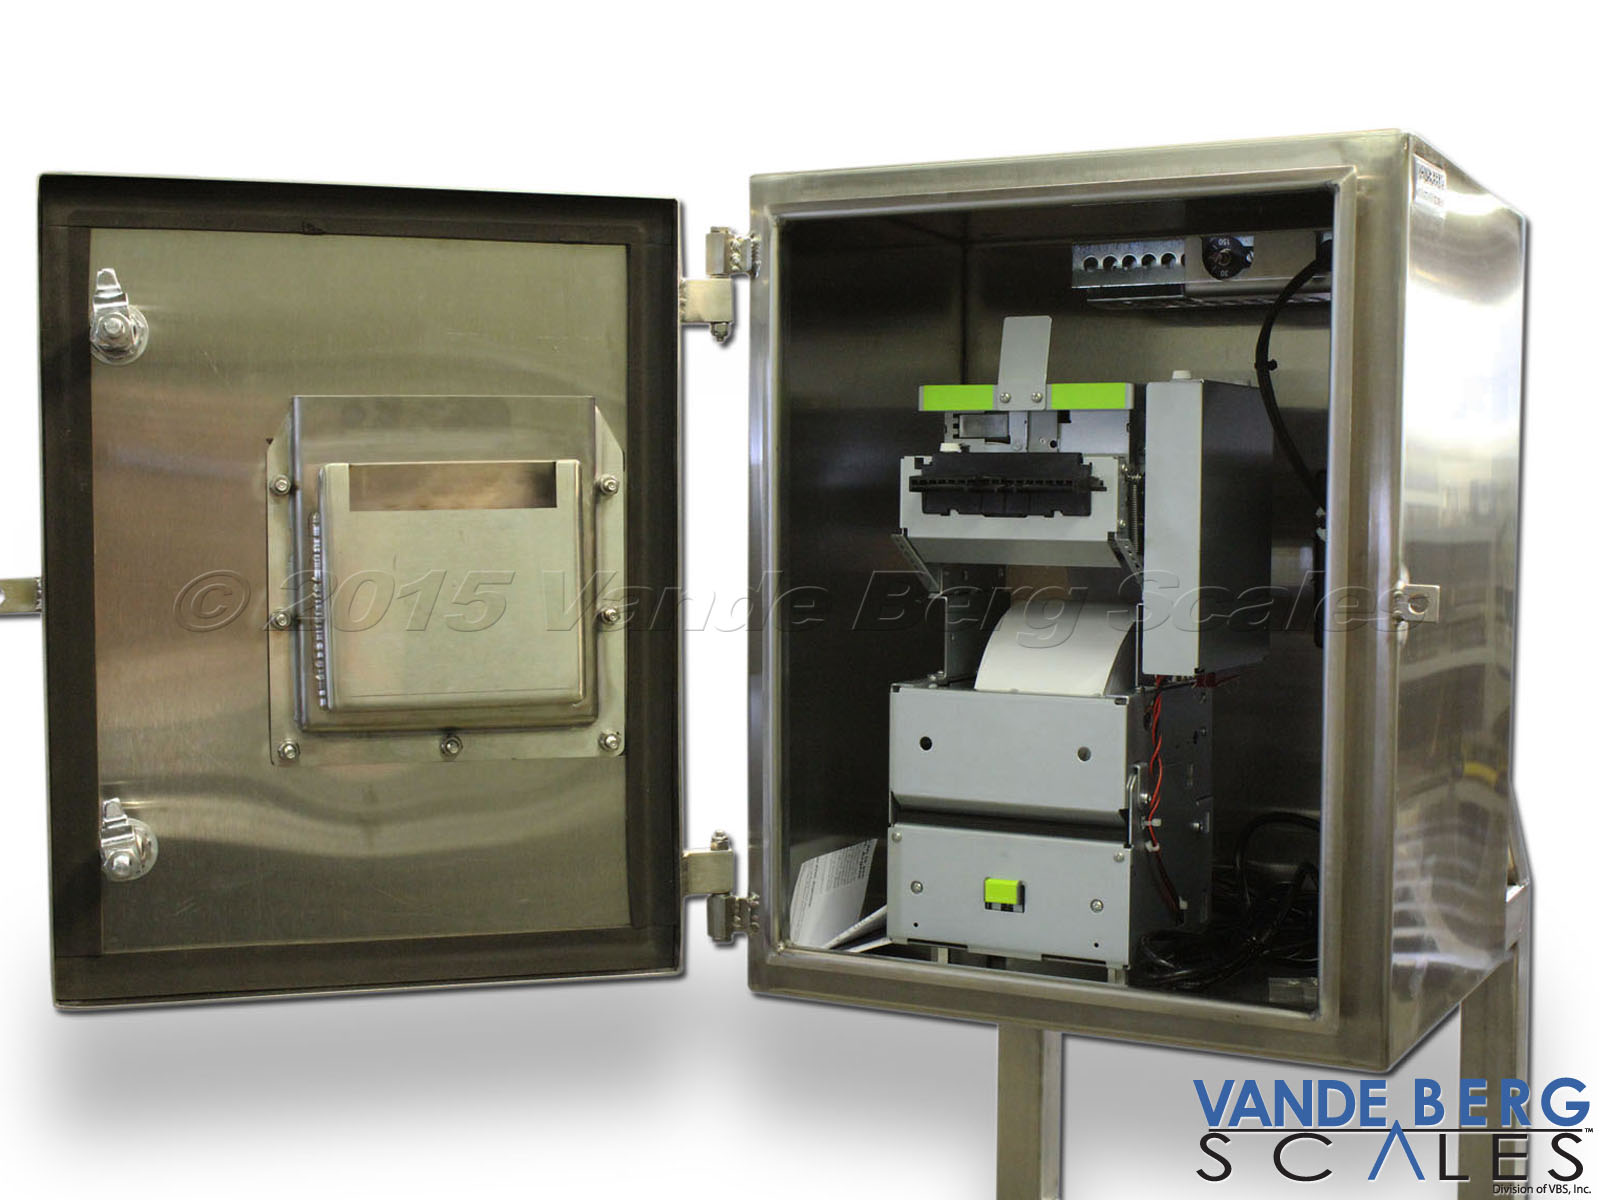 Label roll stock printer inside watertight NEMA-4X enclosure. Notice the strategically-aligned label dispensing mechanism with the door mounted receptacle.